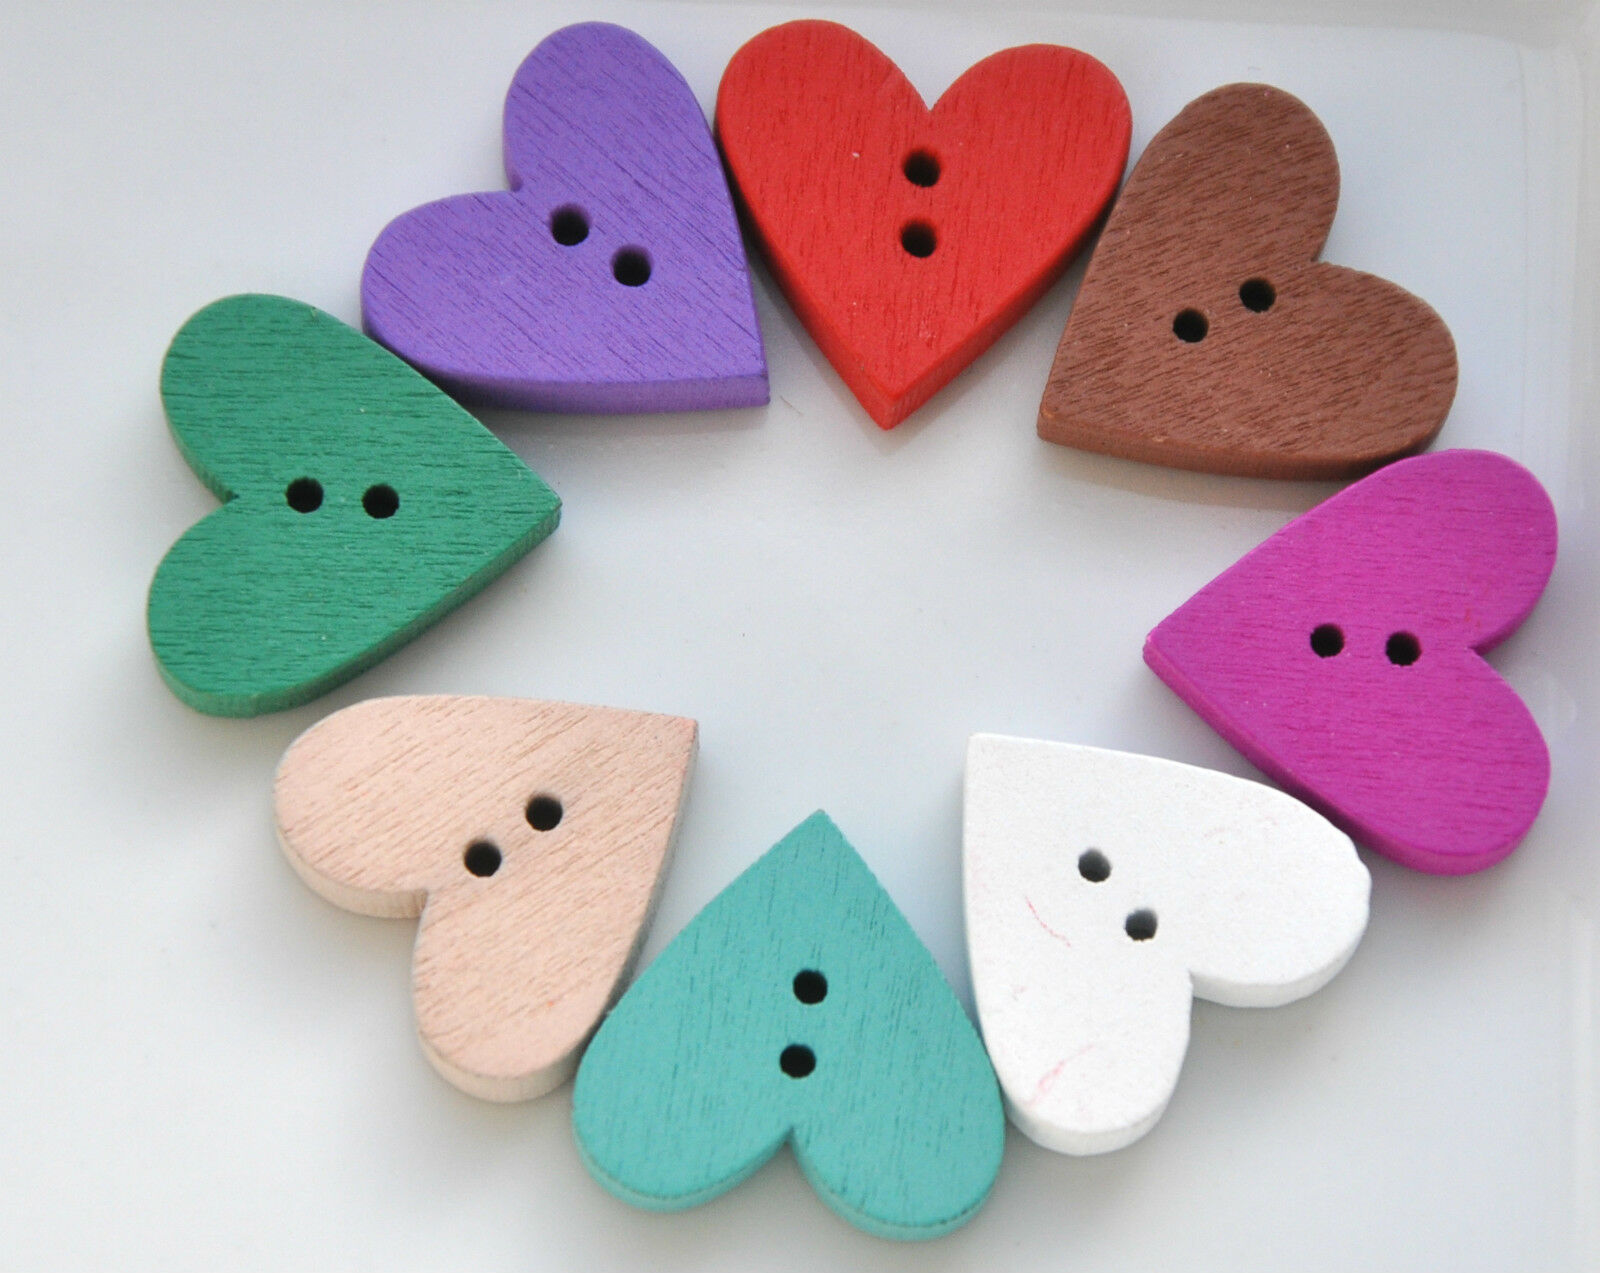 10 / 15 pieces  Wooden Heart Shaped Buttons  Choose your colour or mixed  20mm • £1 29